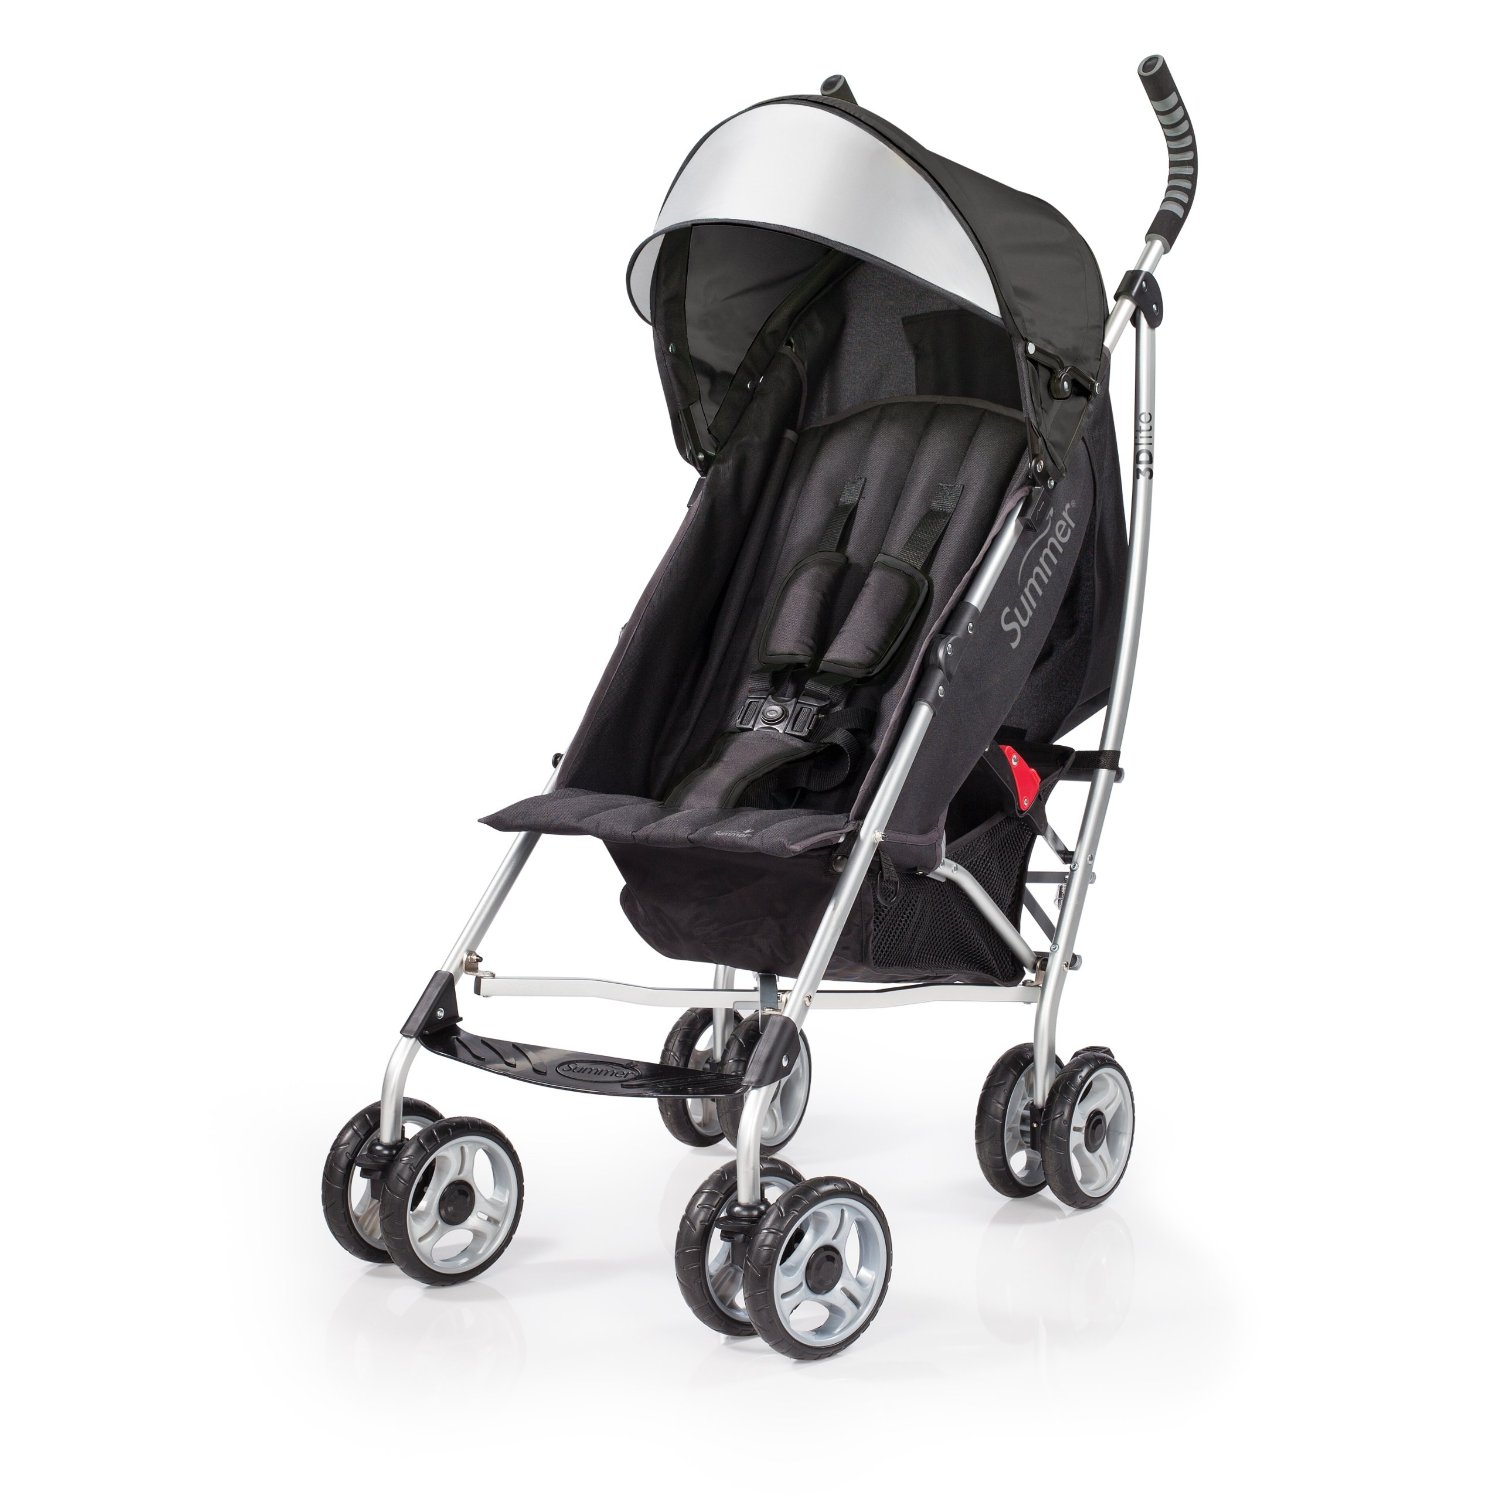 Best Umbrella Strollers of 2015 - it's BABY time!